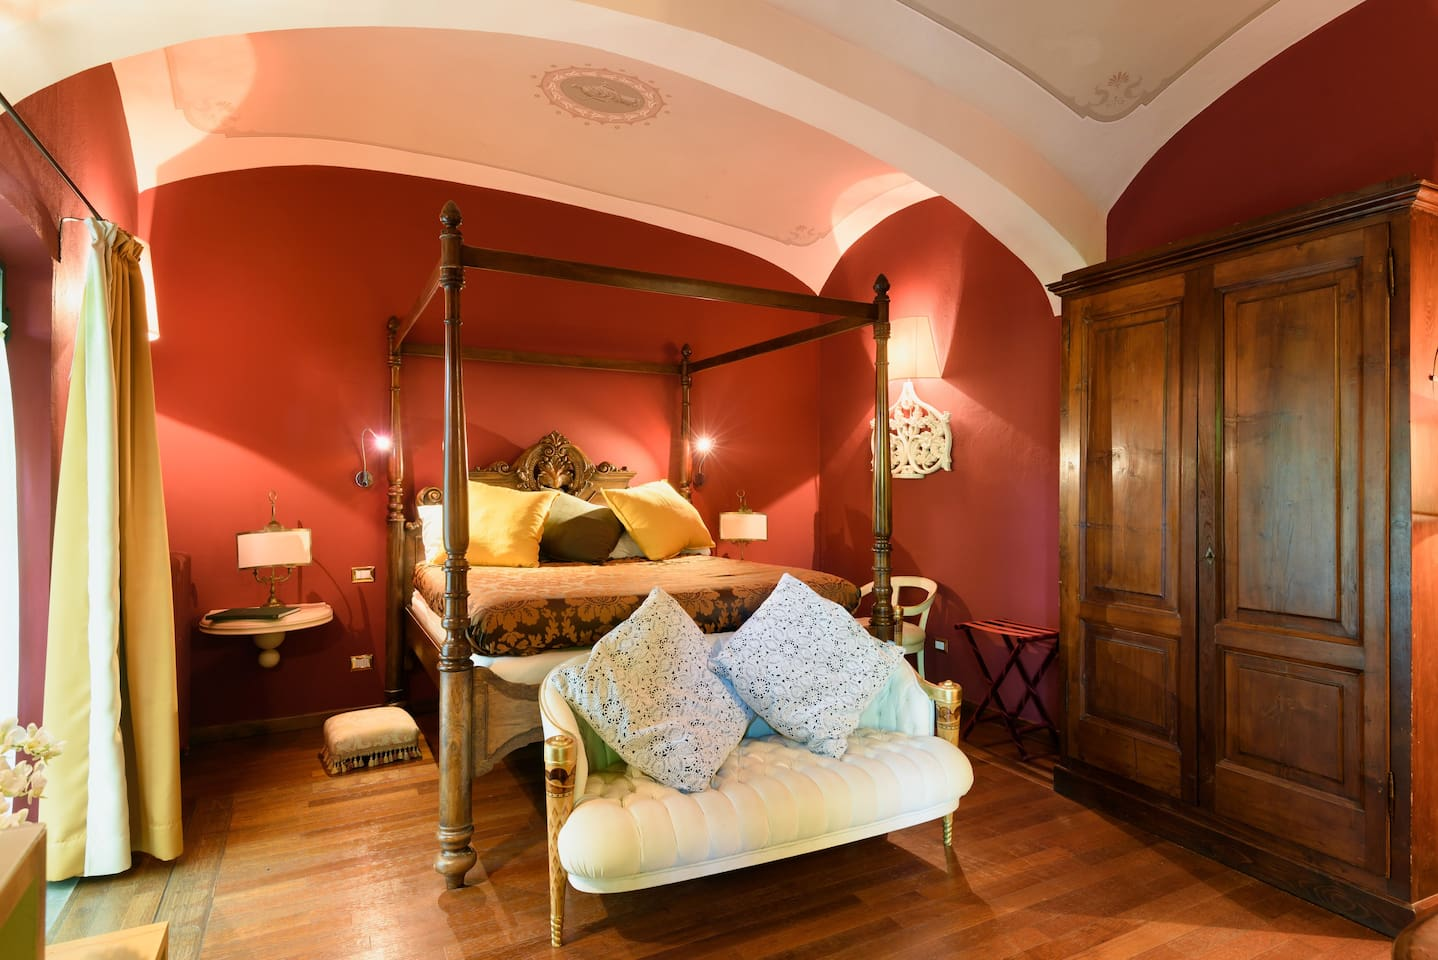 Relais Montemaggiore - Comfortable bedroom